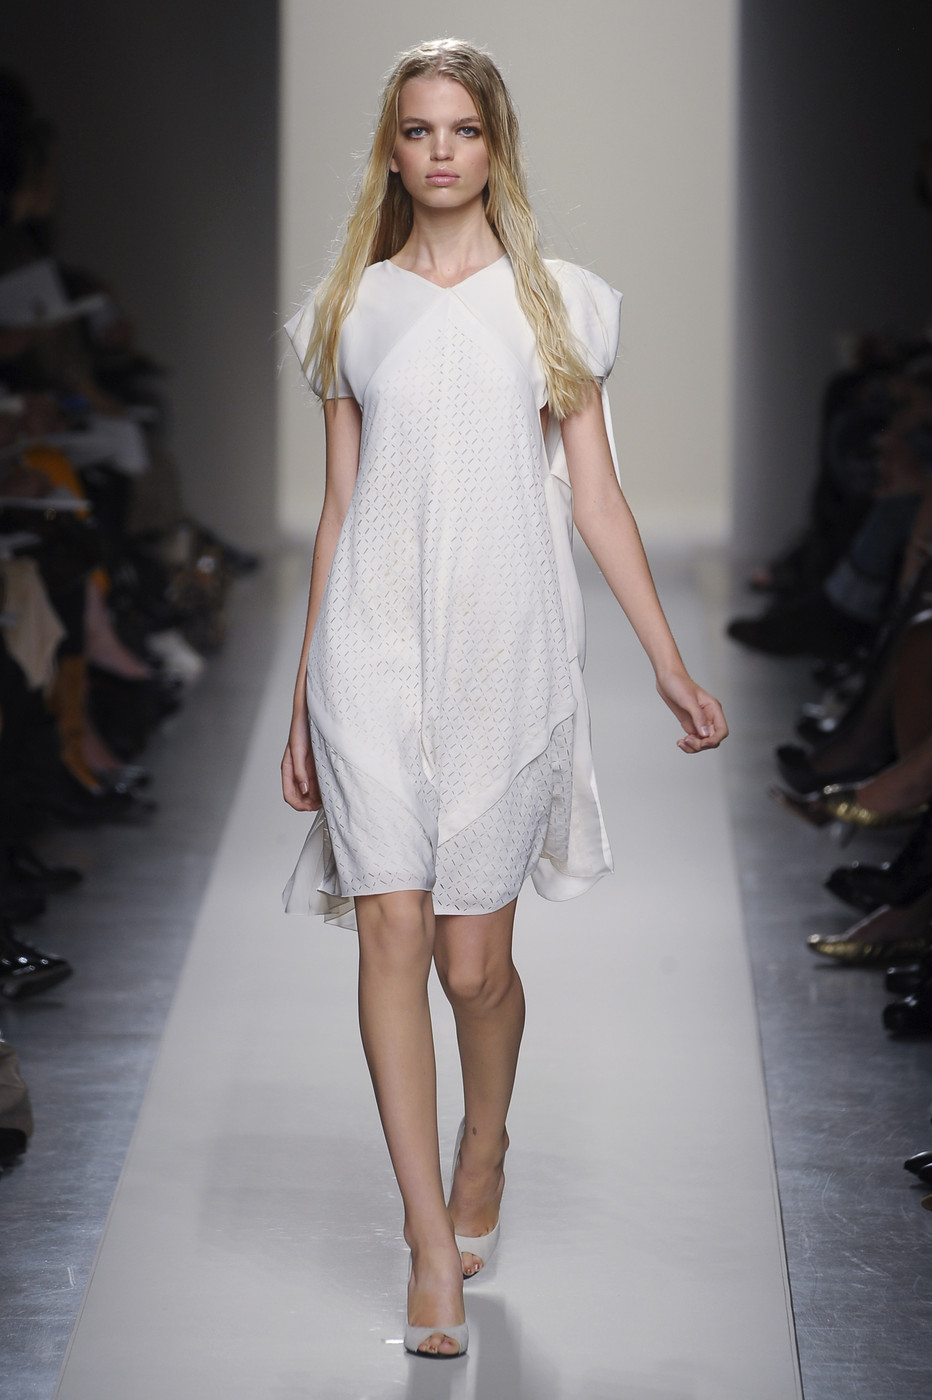 via fashioned by love | bottega veneta spring/summer 2011